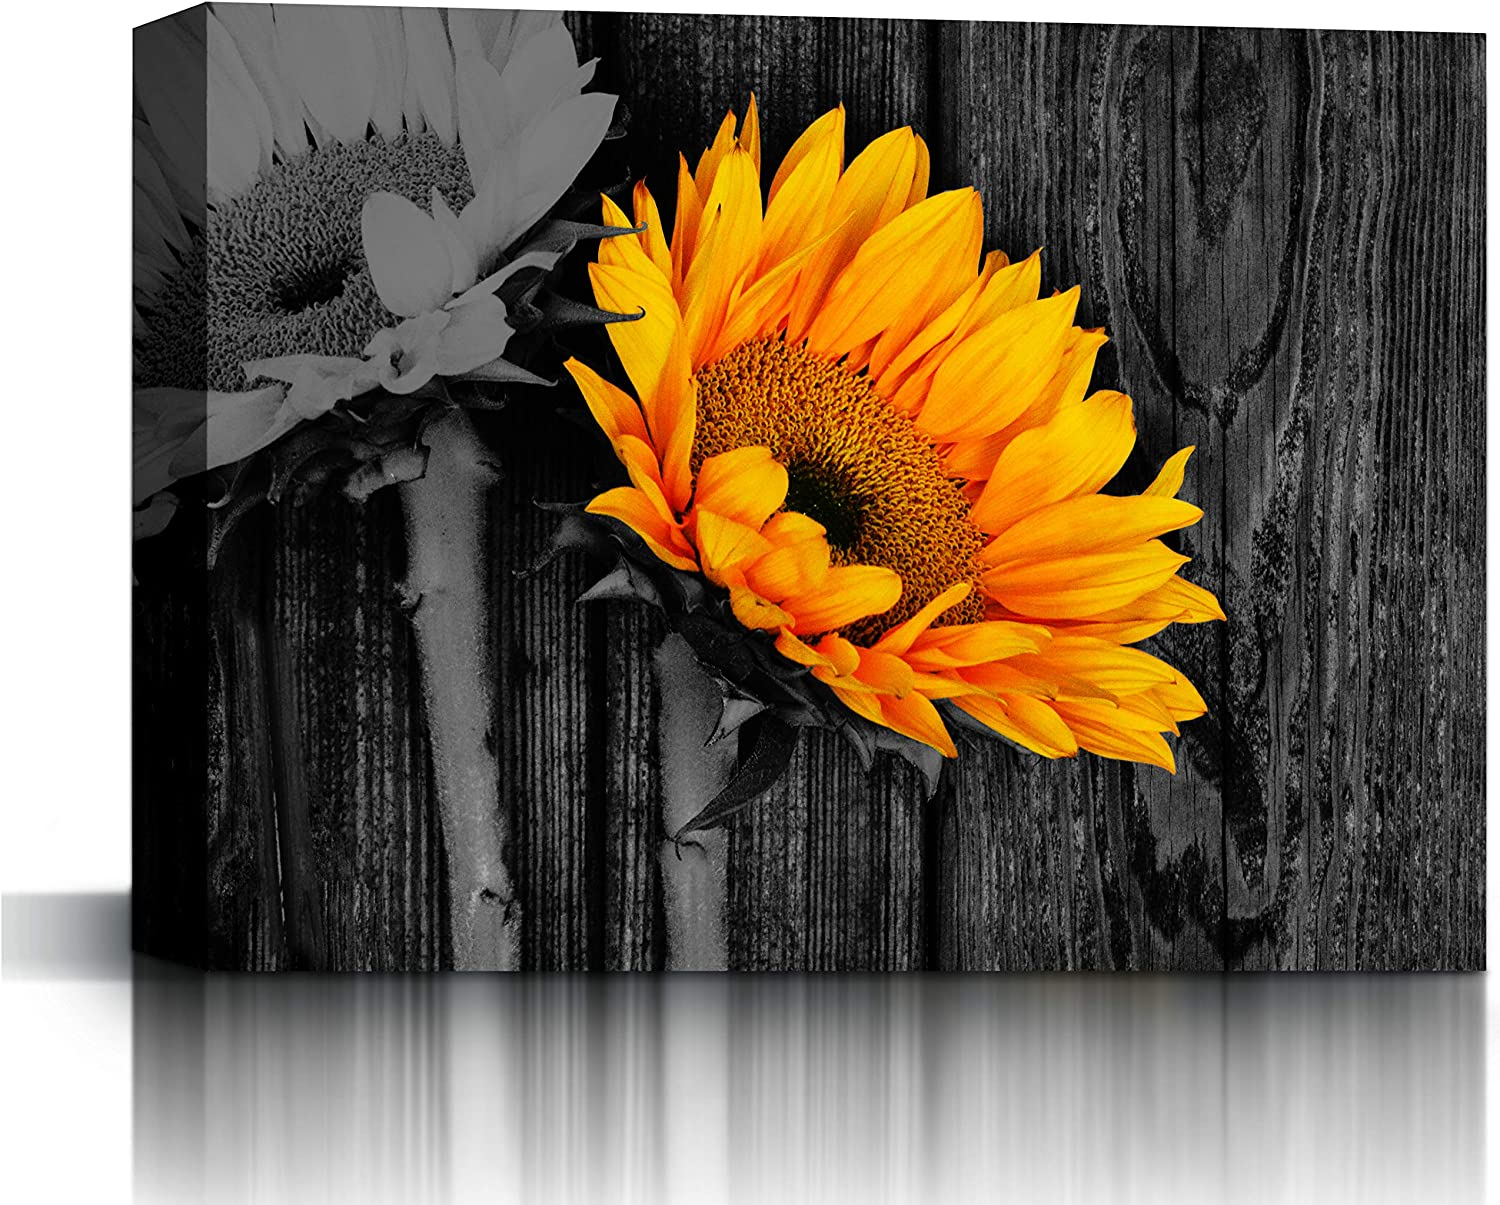 Blanche Black and White Rustic Sunflower on Wooden Table Wall Art Framed Canvas Print Decor   Modern Artwork Picture for Living Room Bedroom Home Salon Decoration   Size 32x24in